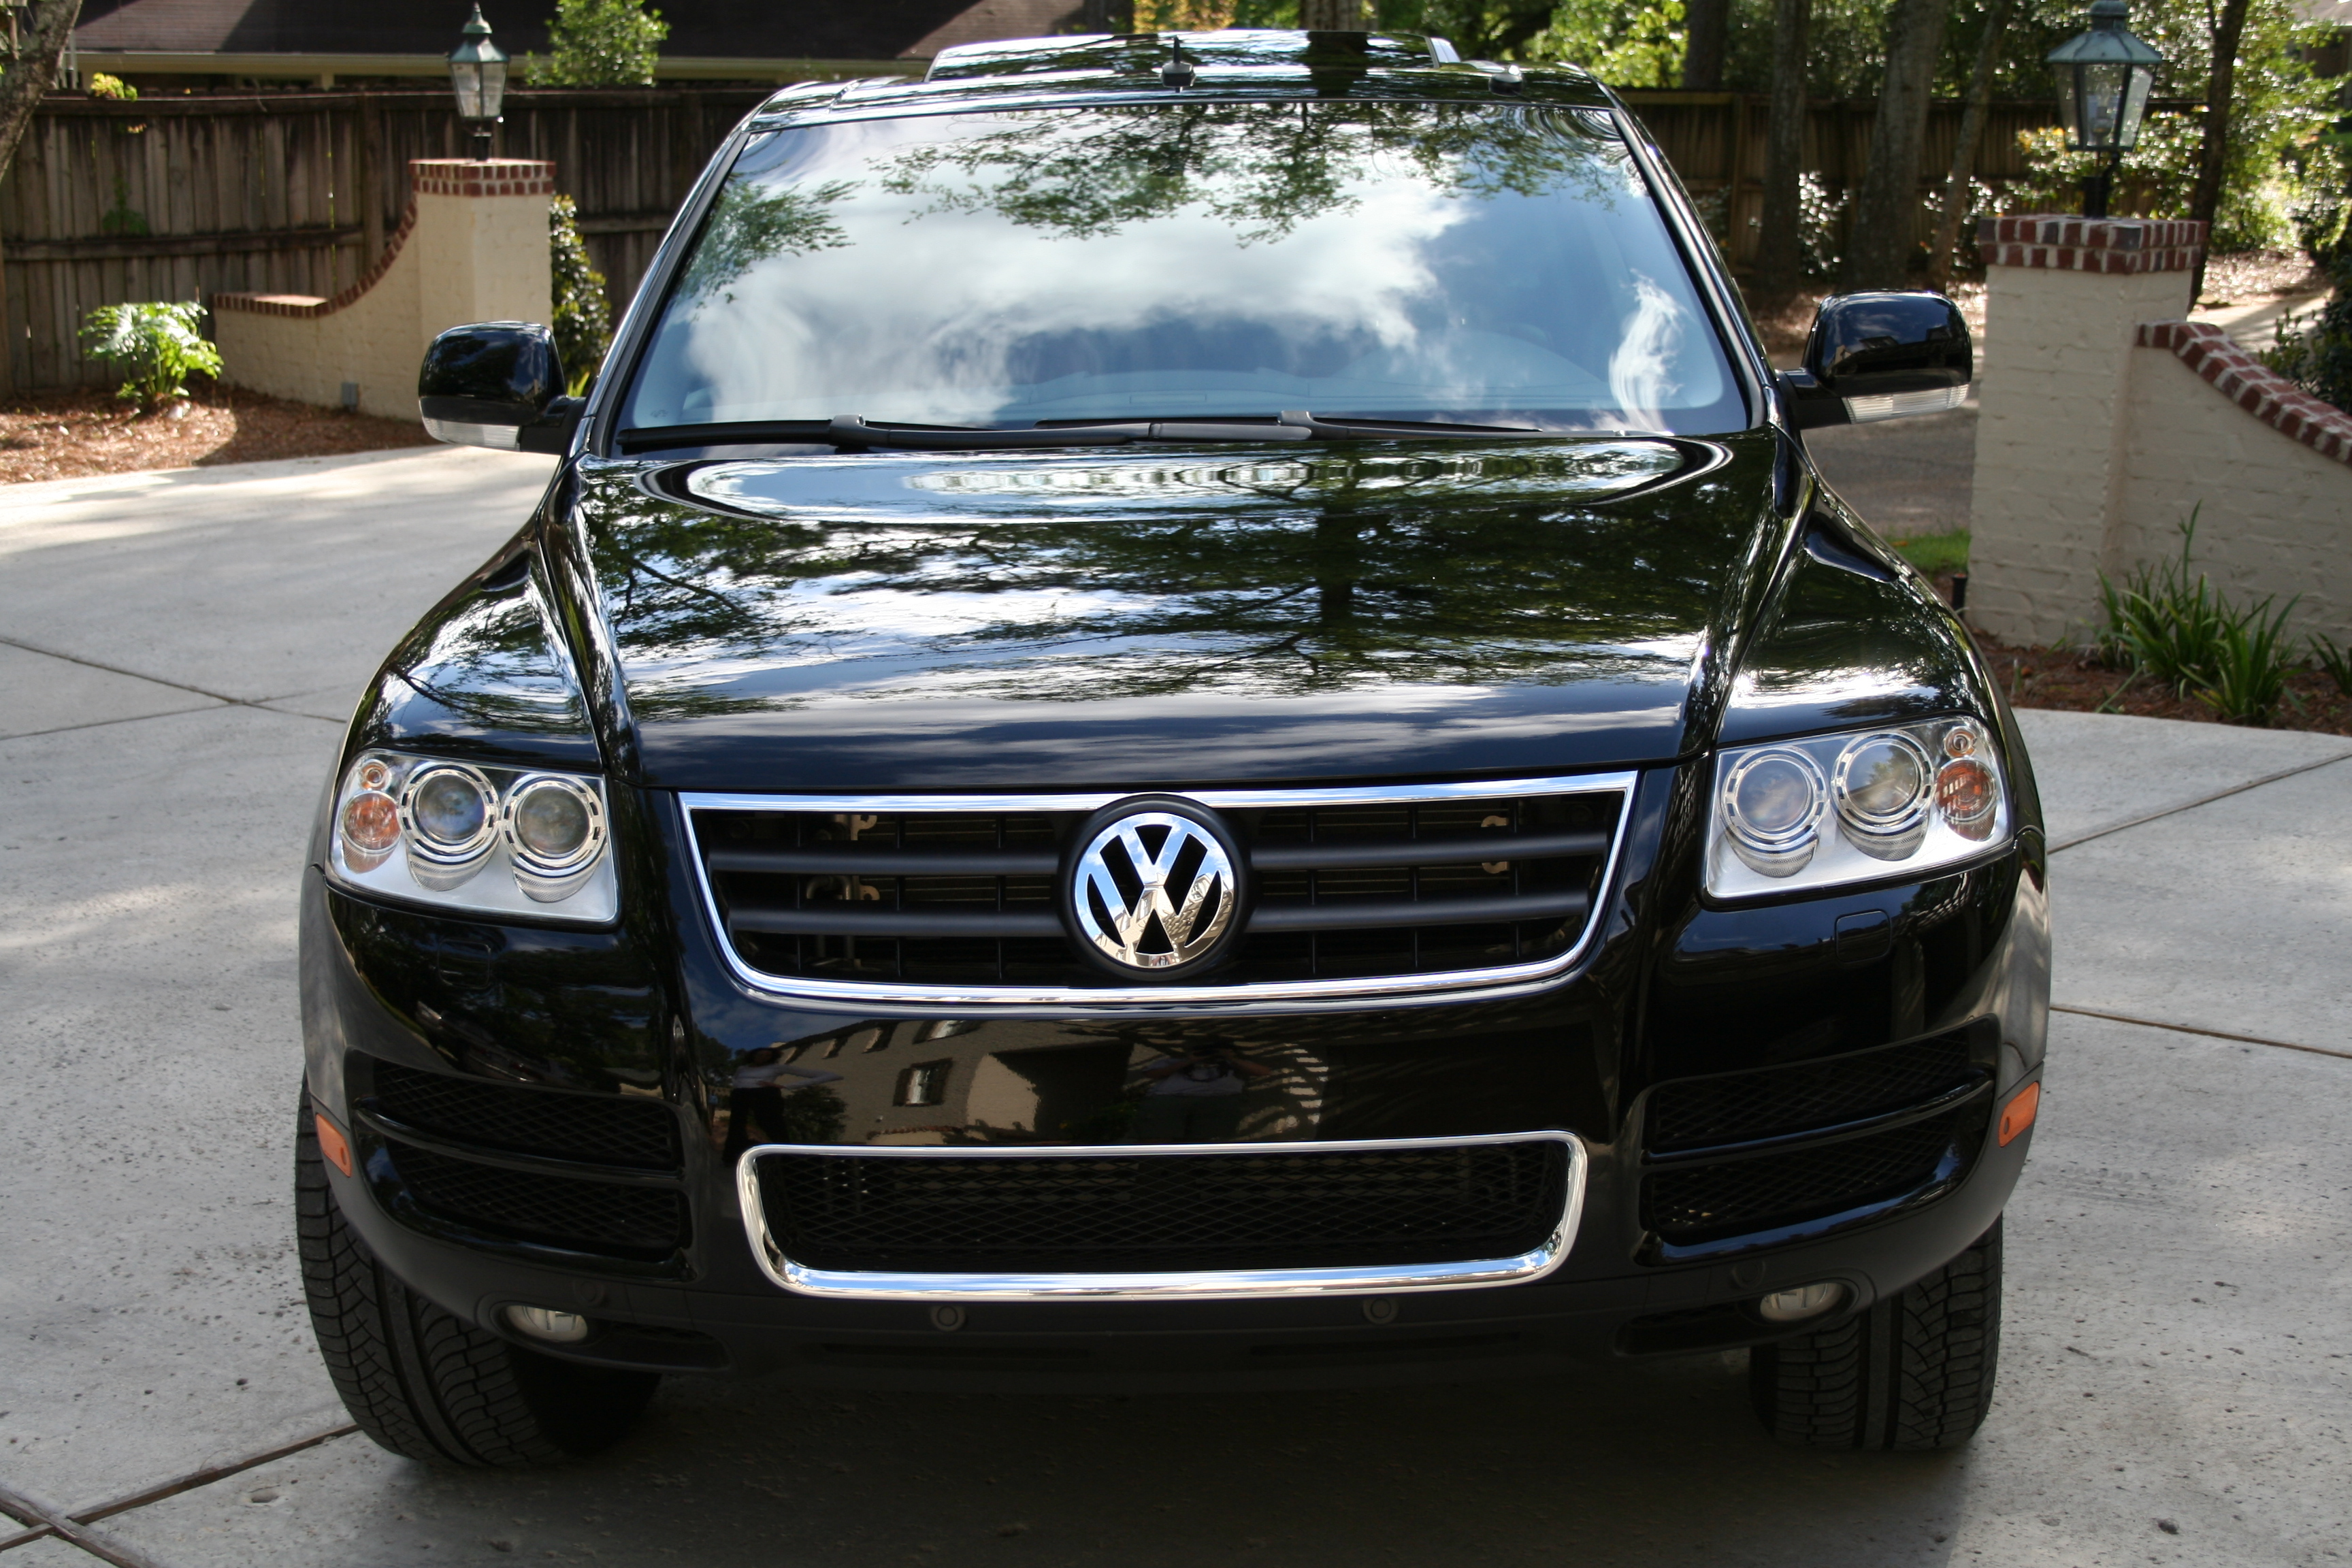 rjb7266 2004 volkswagen touareg specs photos modification info at cardomain. Black Bedroom Furniture Sets. Home Design Ideas